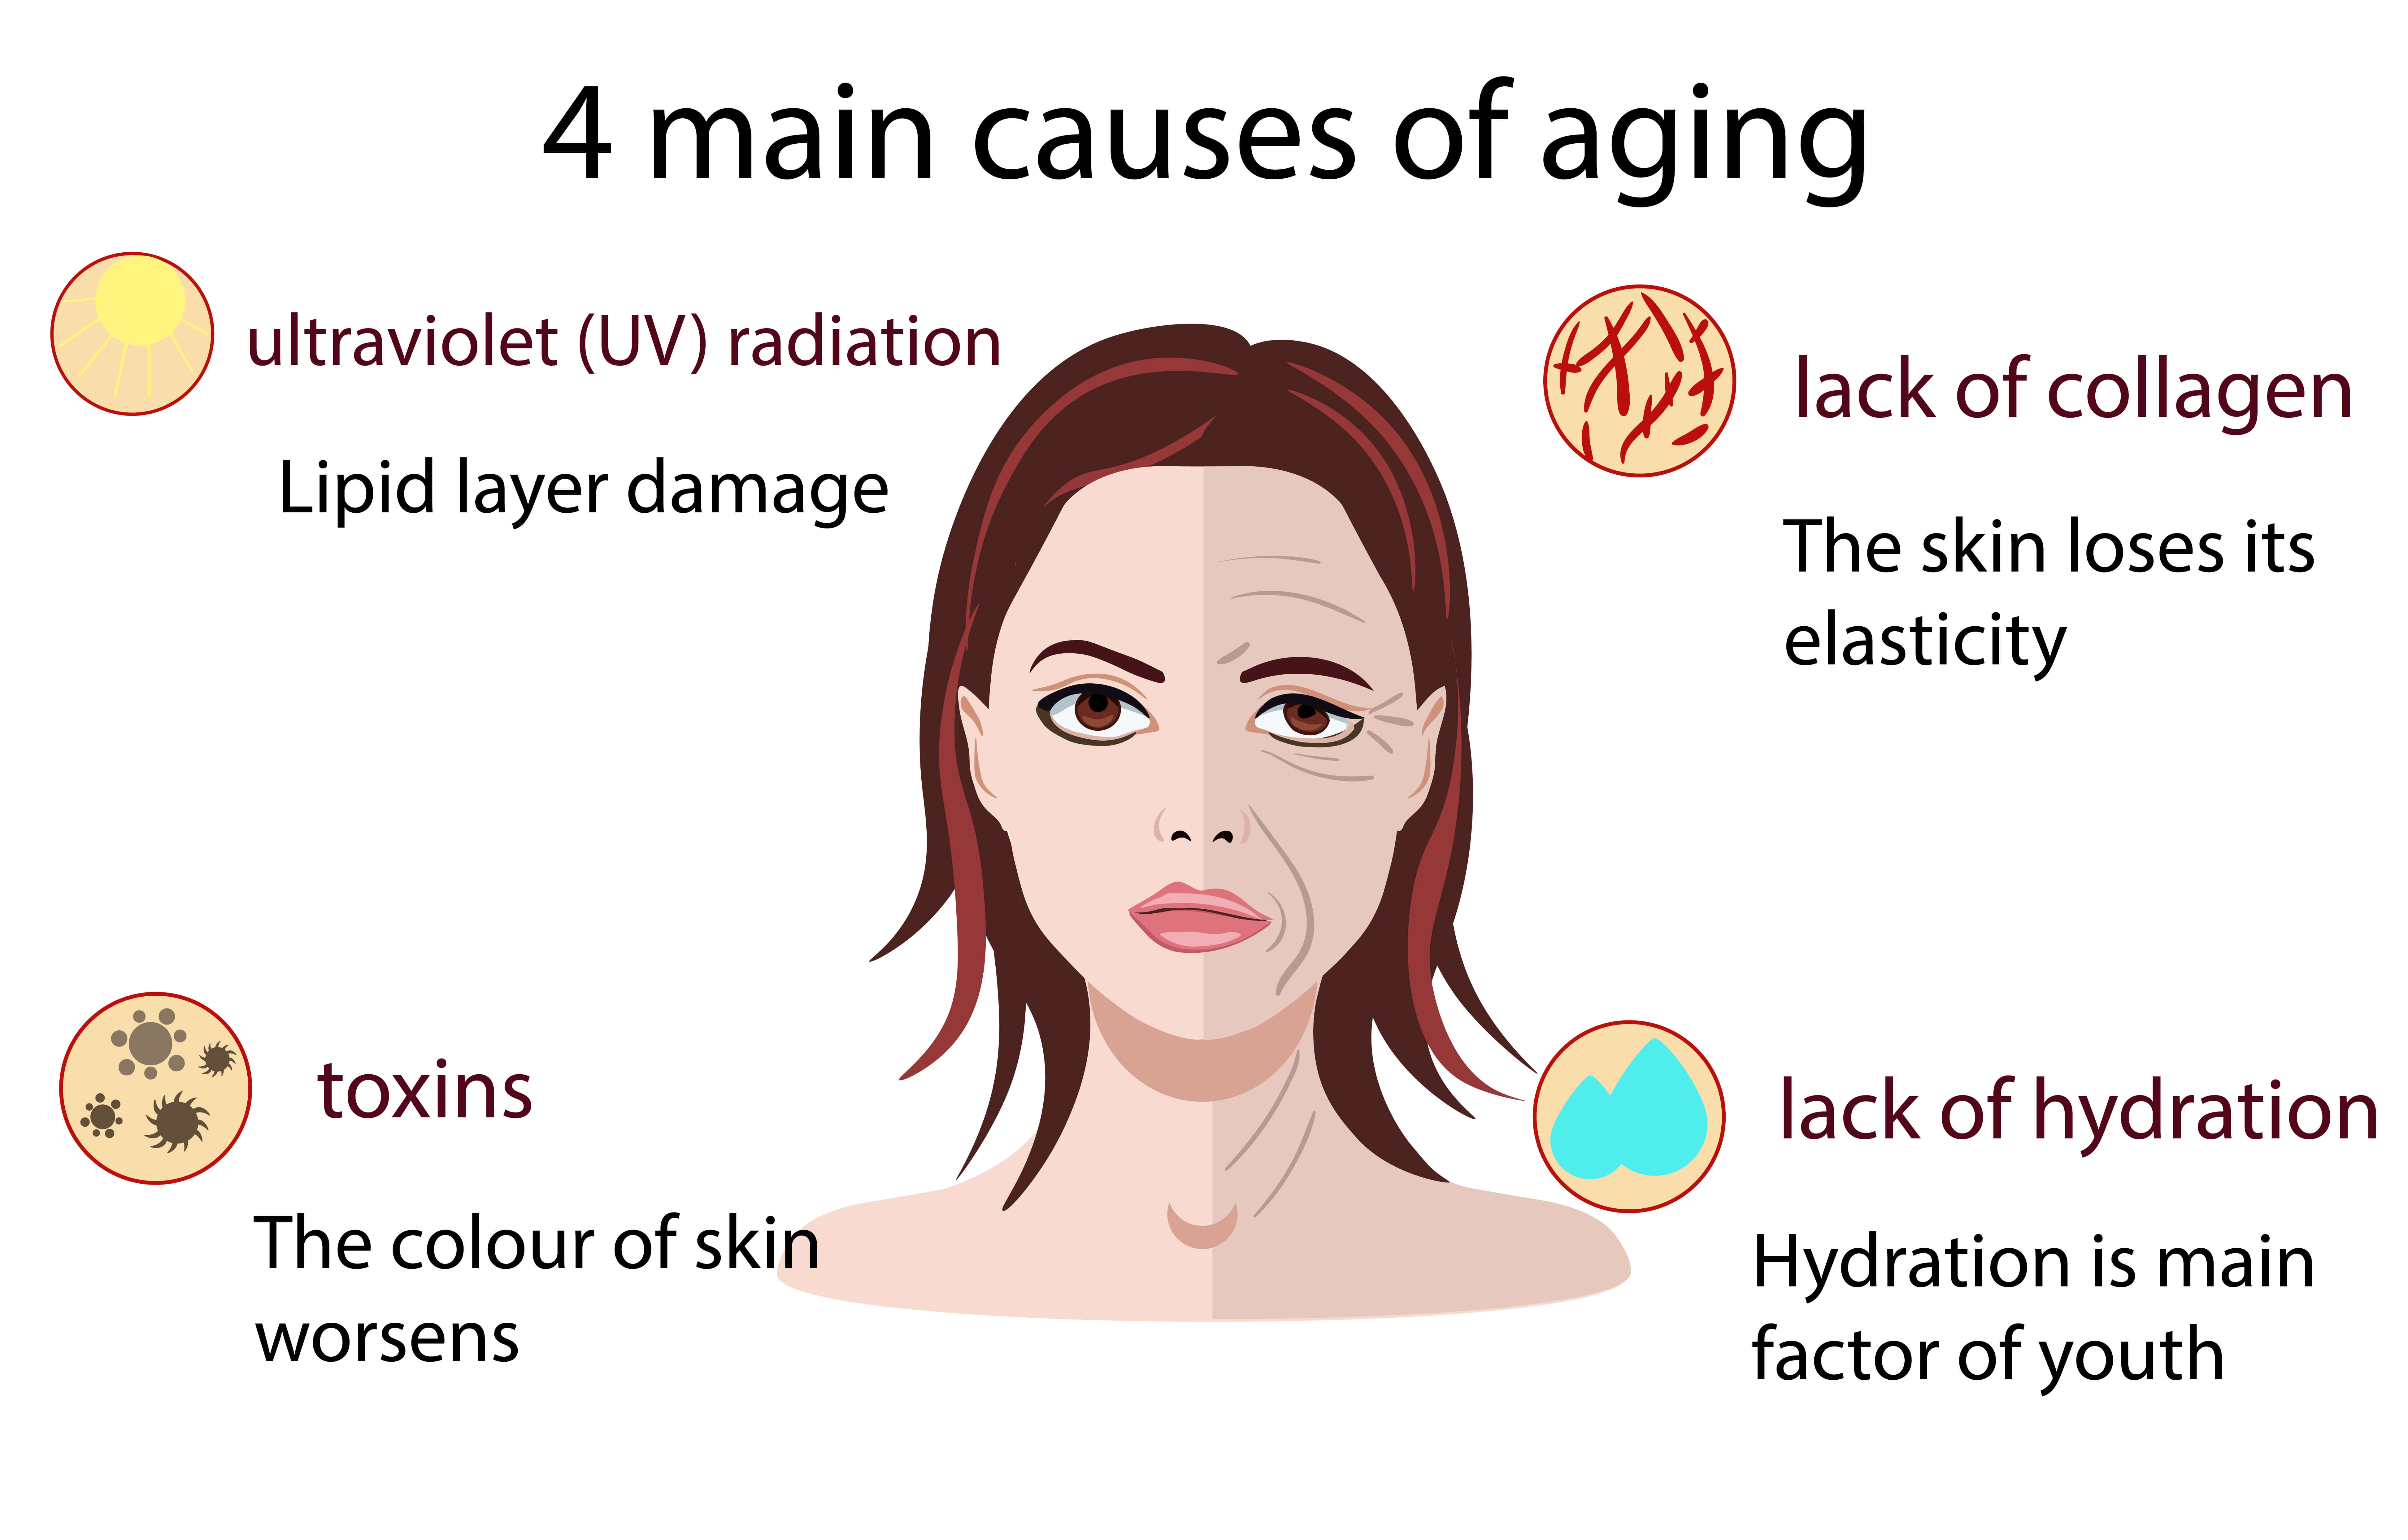 Infographic on the 4 main causes of aging